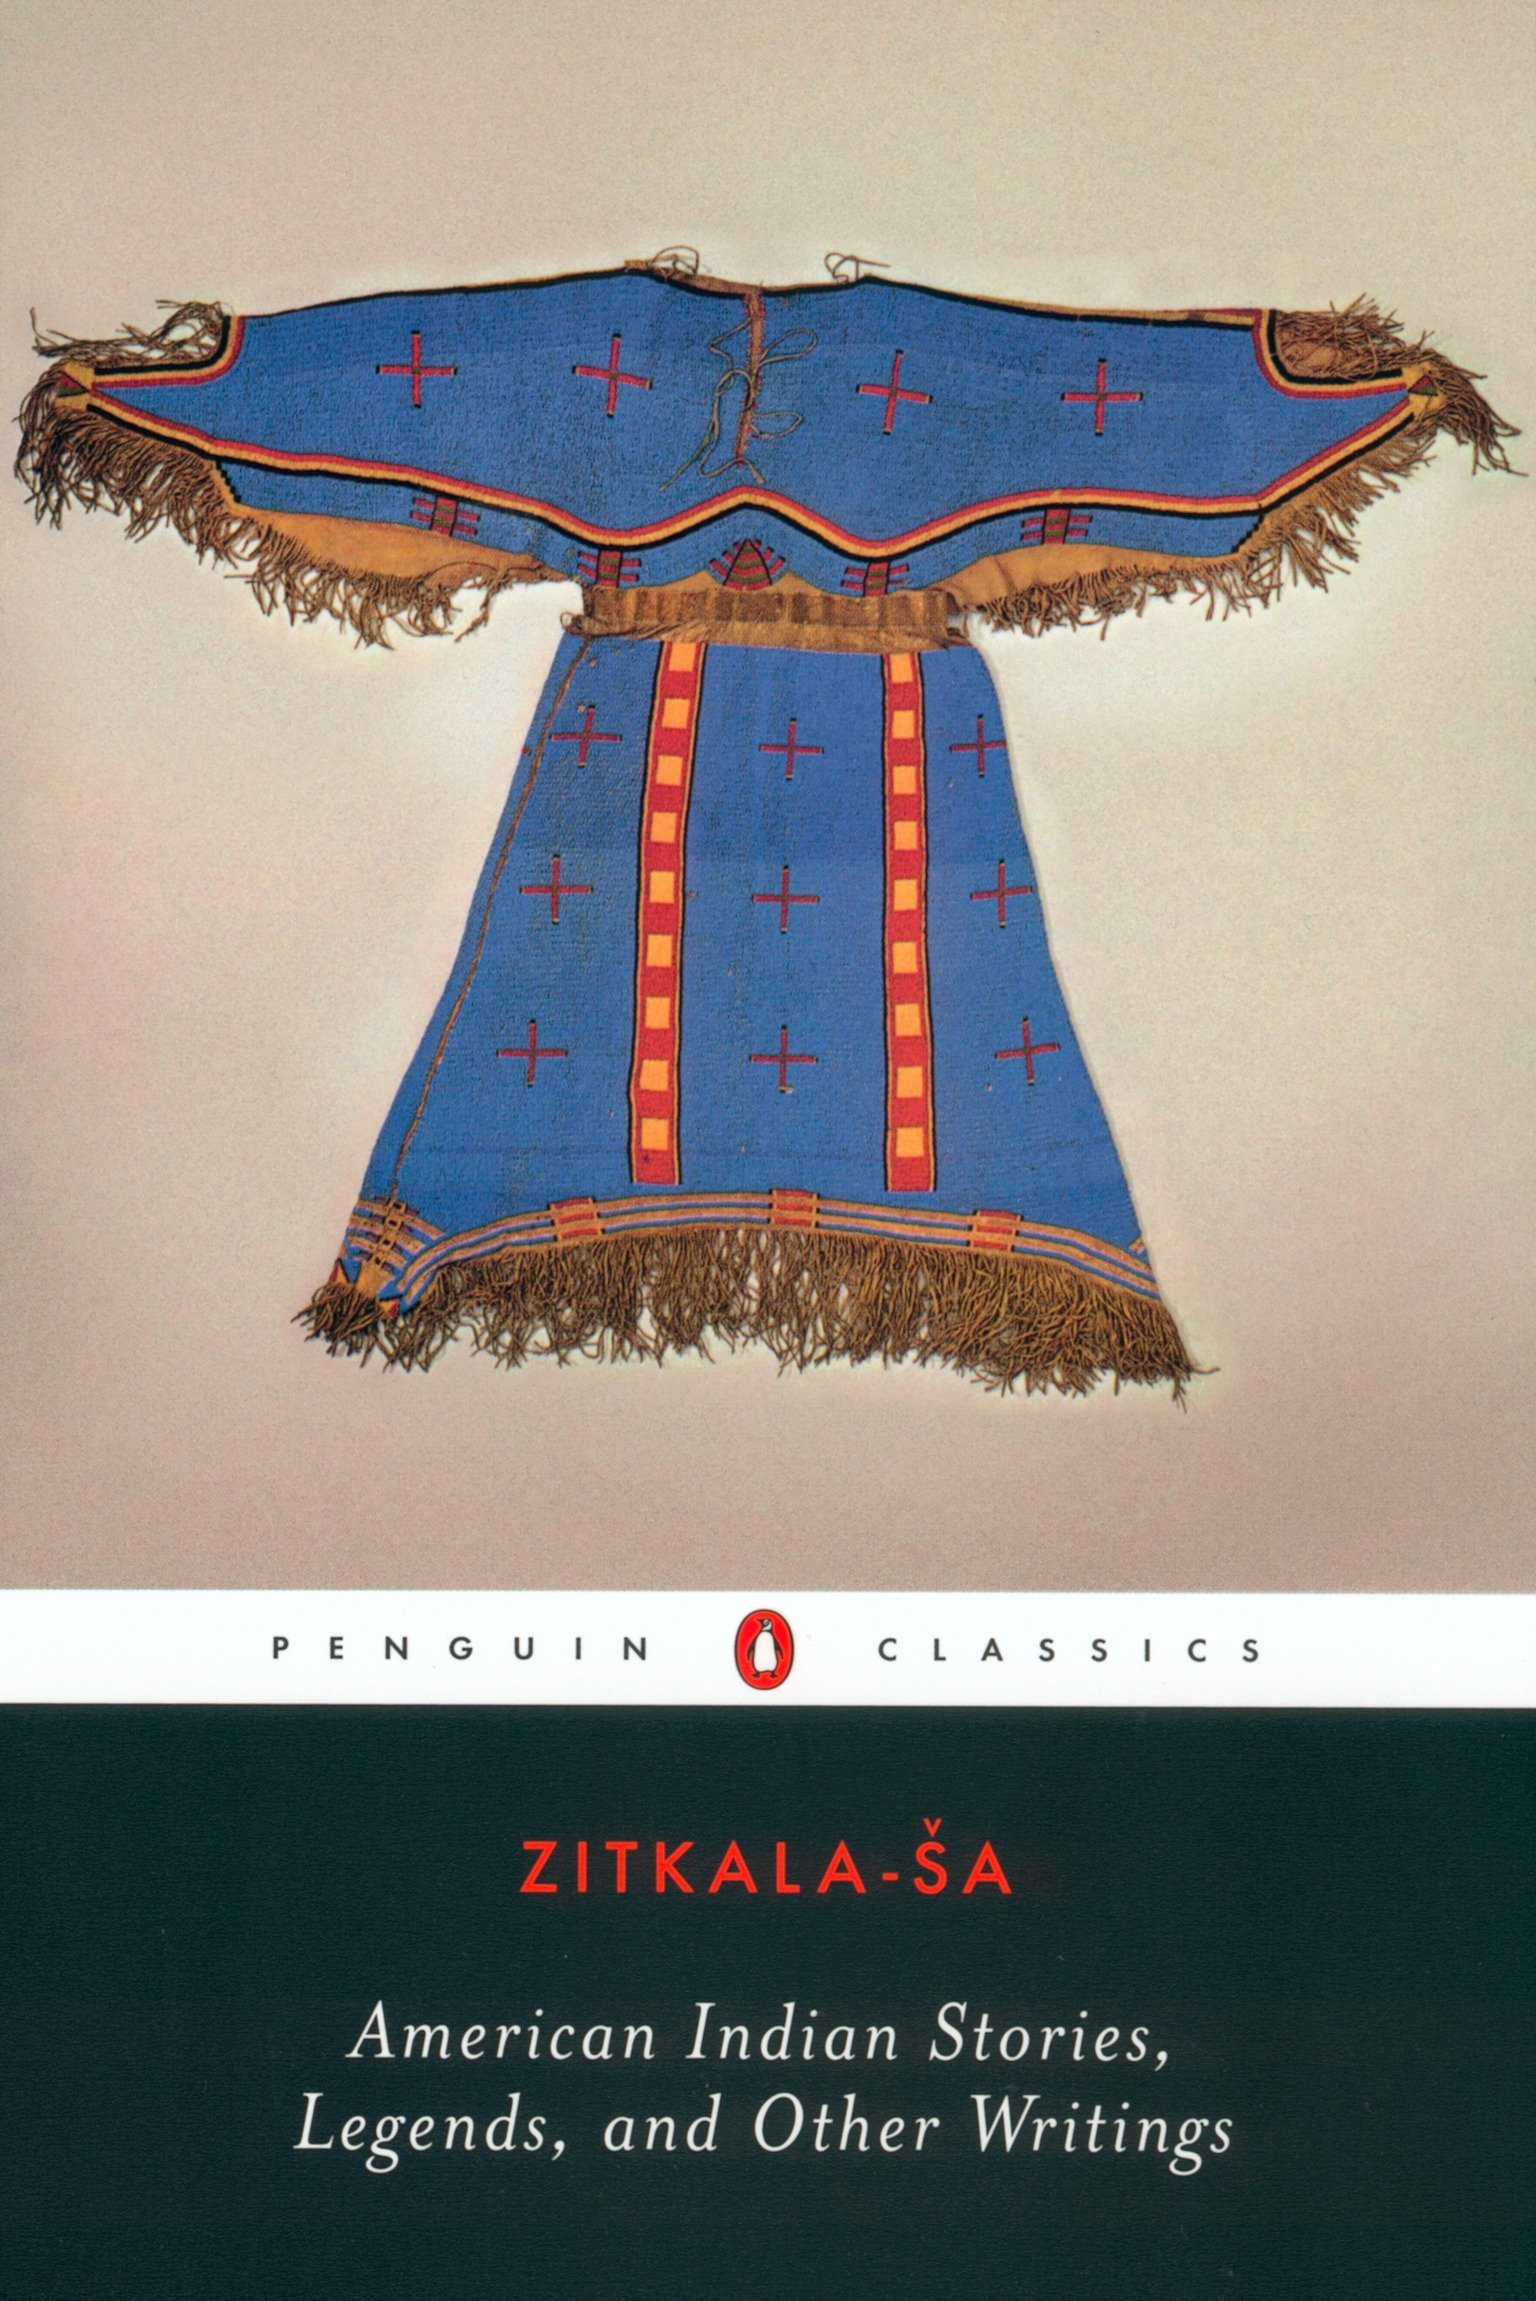 American Indian Stories, Legends, and Other Writings (Penguin Classics)